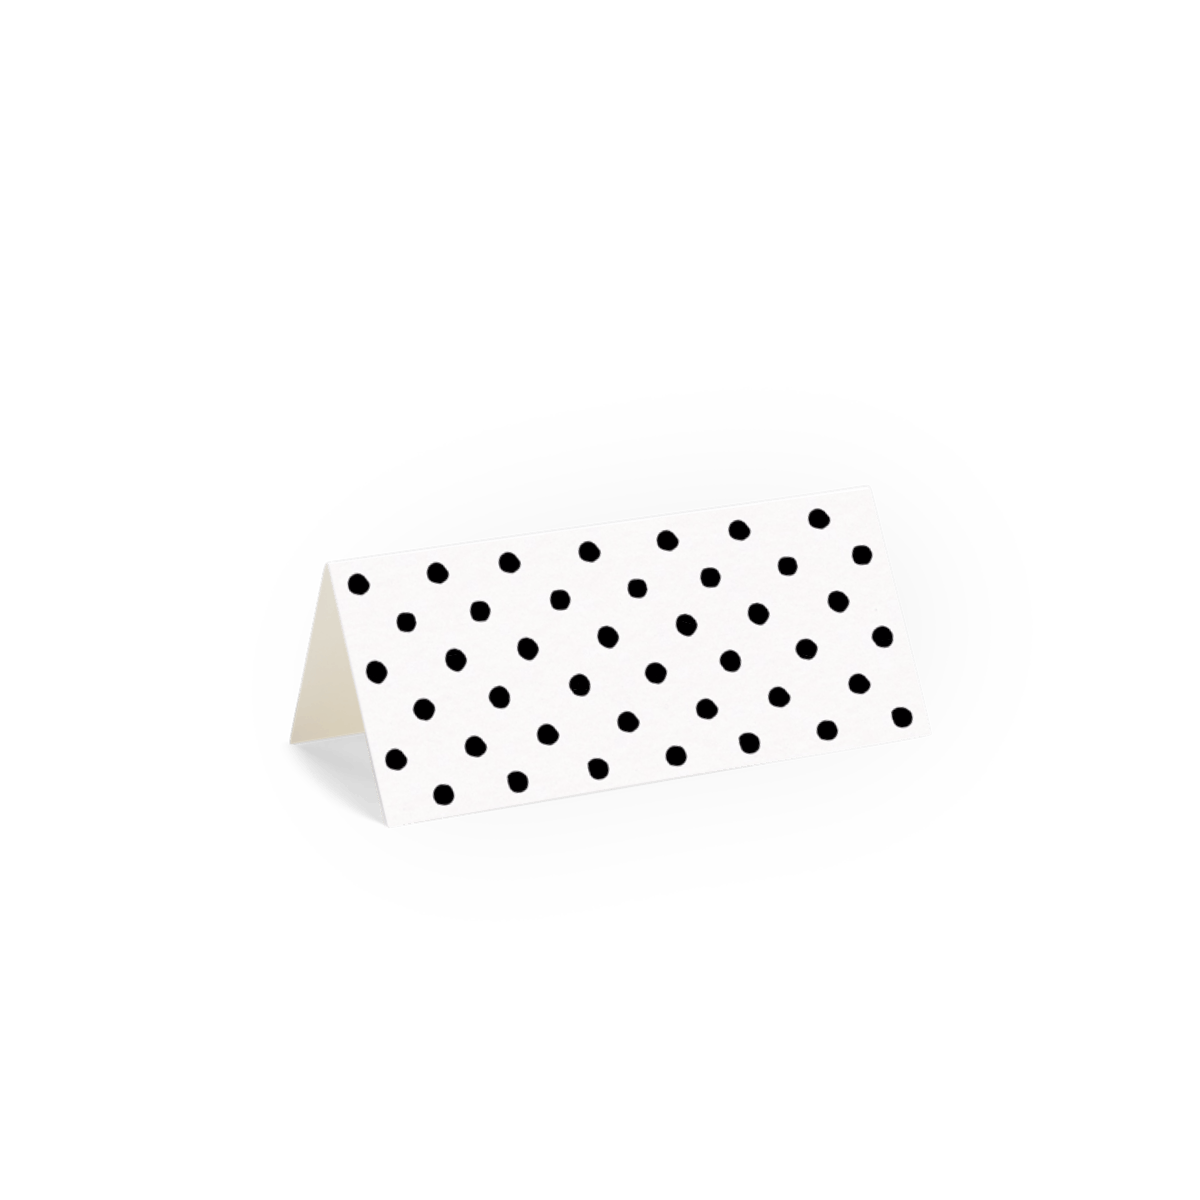 Https%3a%2f%2fwww.papier.com%2fproduct image%2f10784%2f15%2fpainted polka dot 2751 back 1473267520.png?ixlib=rb 1.1